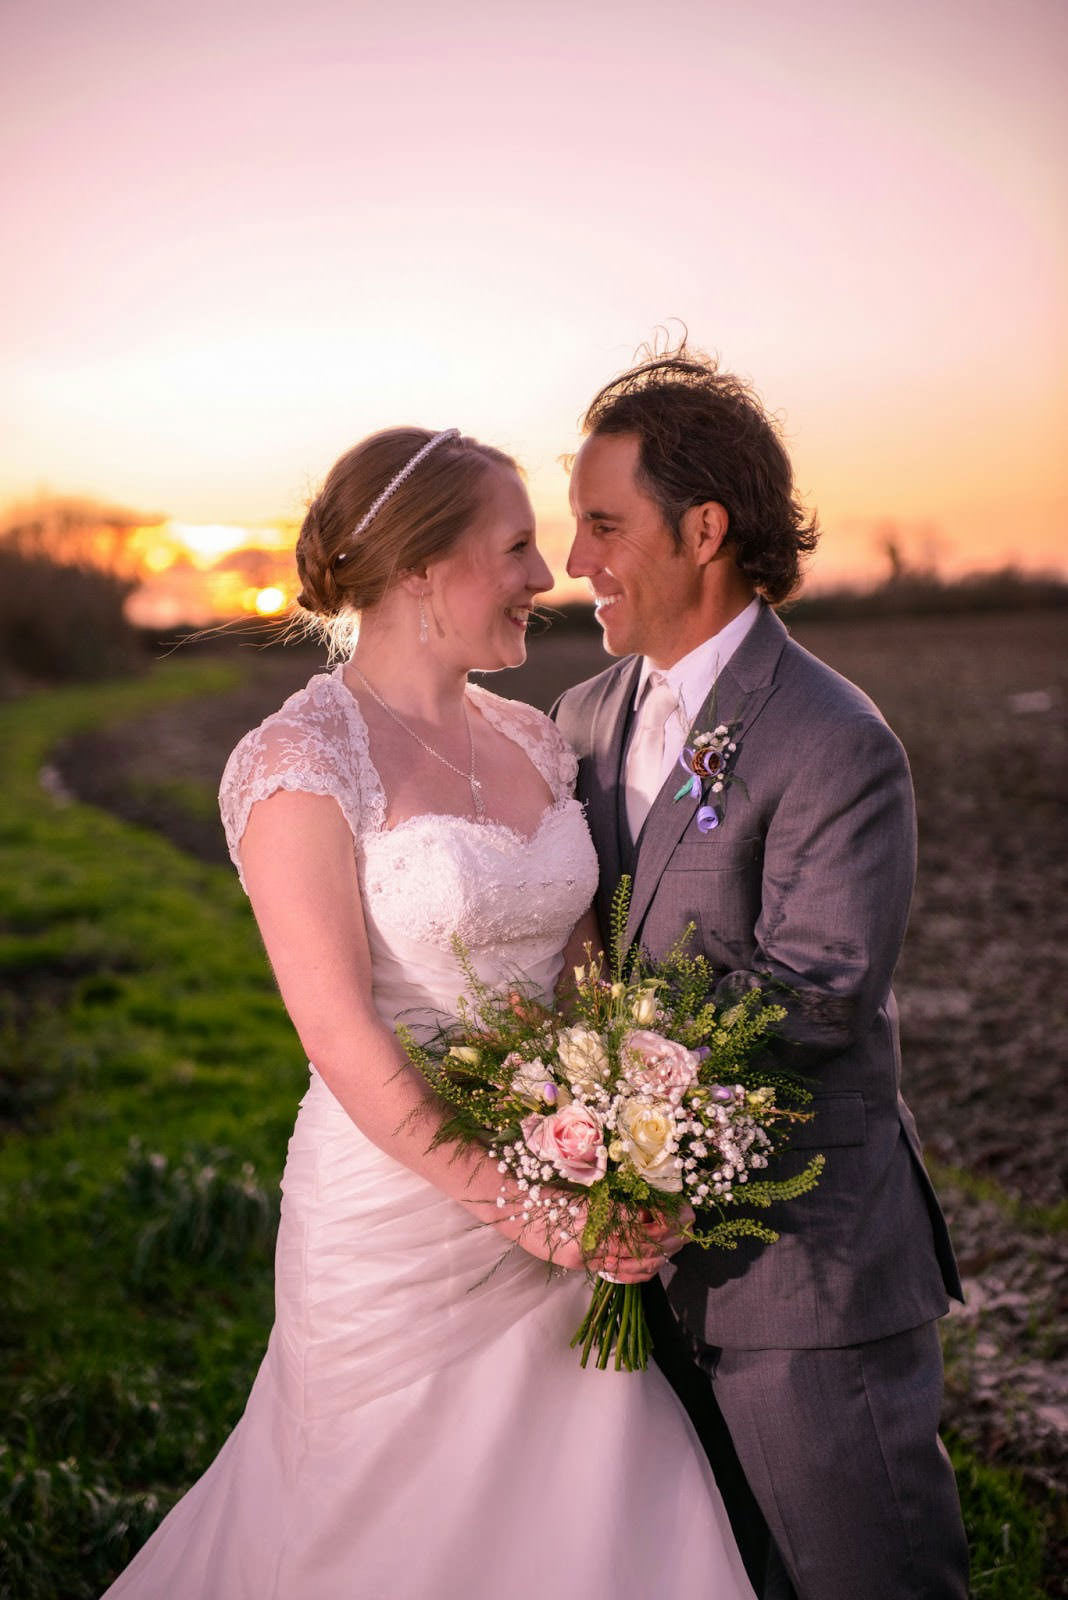 ali-gaudion-chichester-wedding-photographer-southend-barns-winter-wedding-005